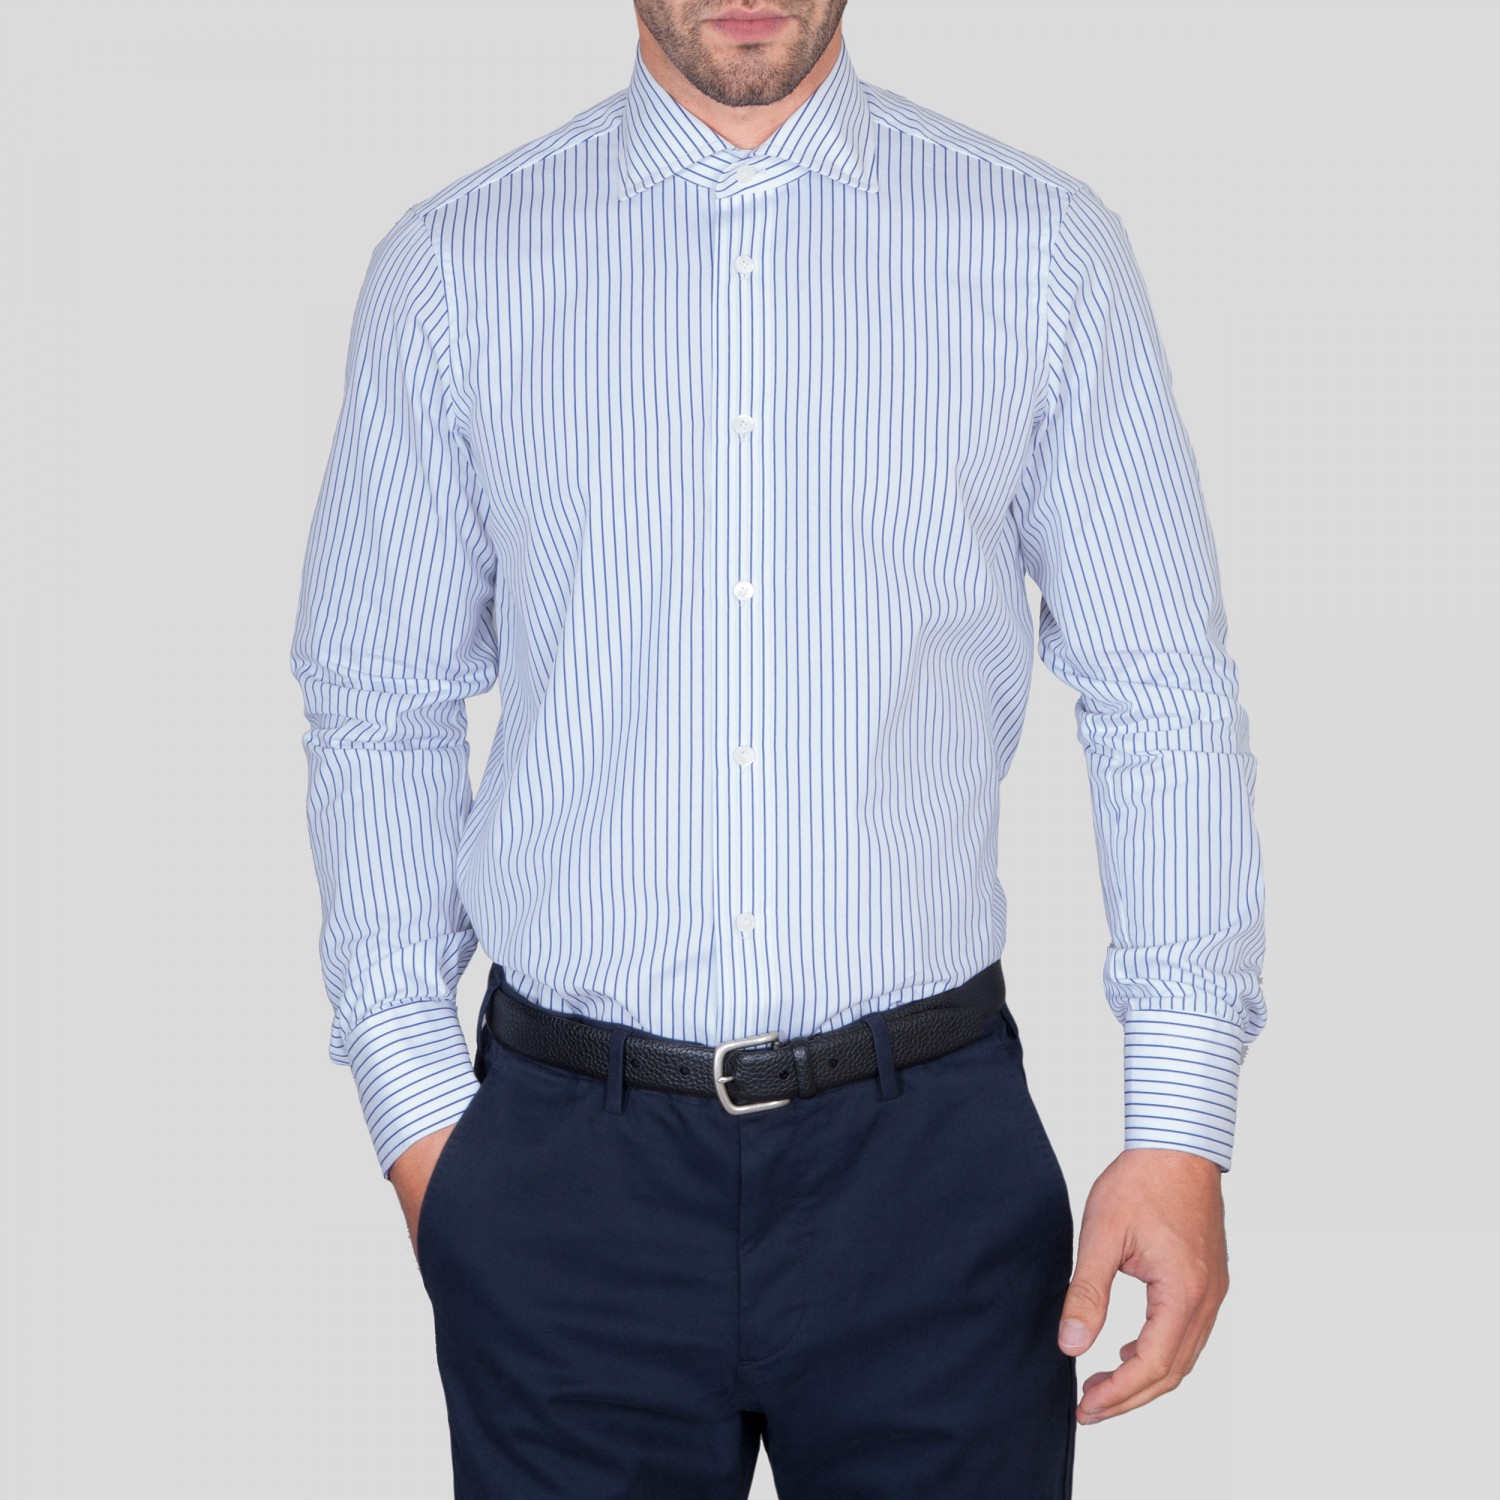 G inglese stripe spread collar shirt white blue for What is a spread collar shirt